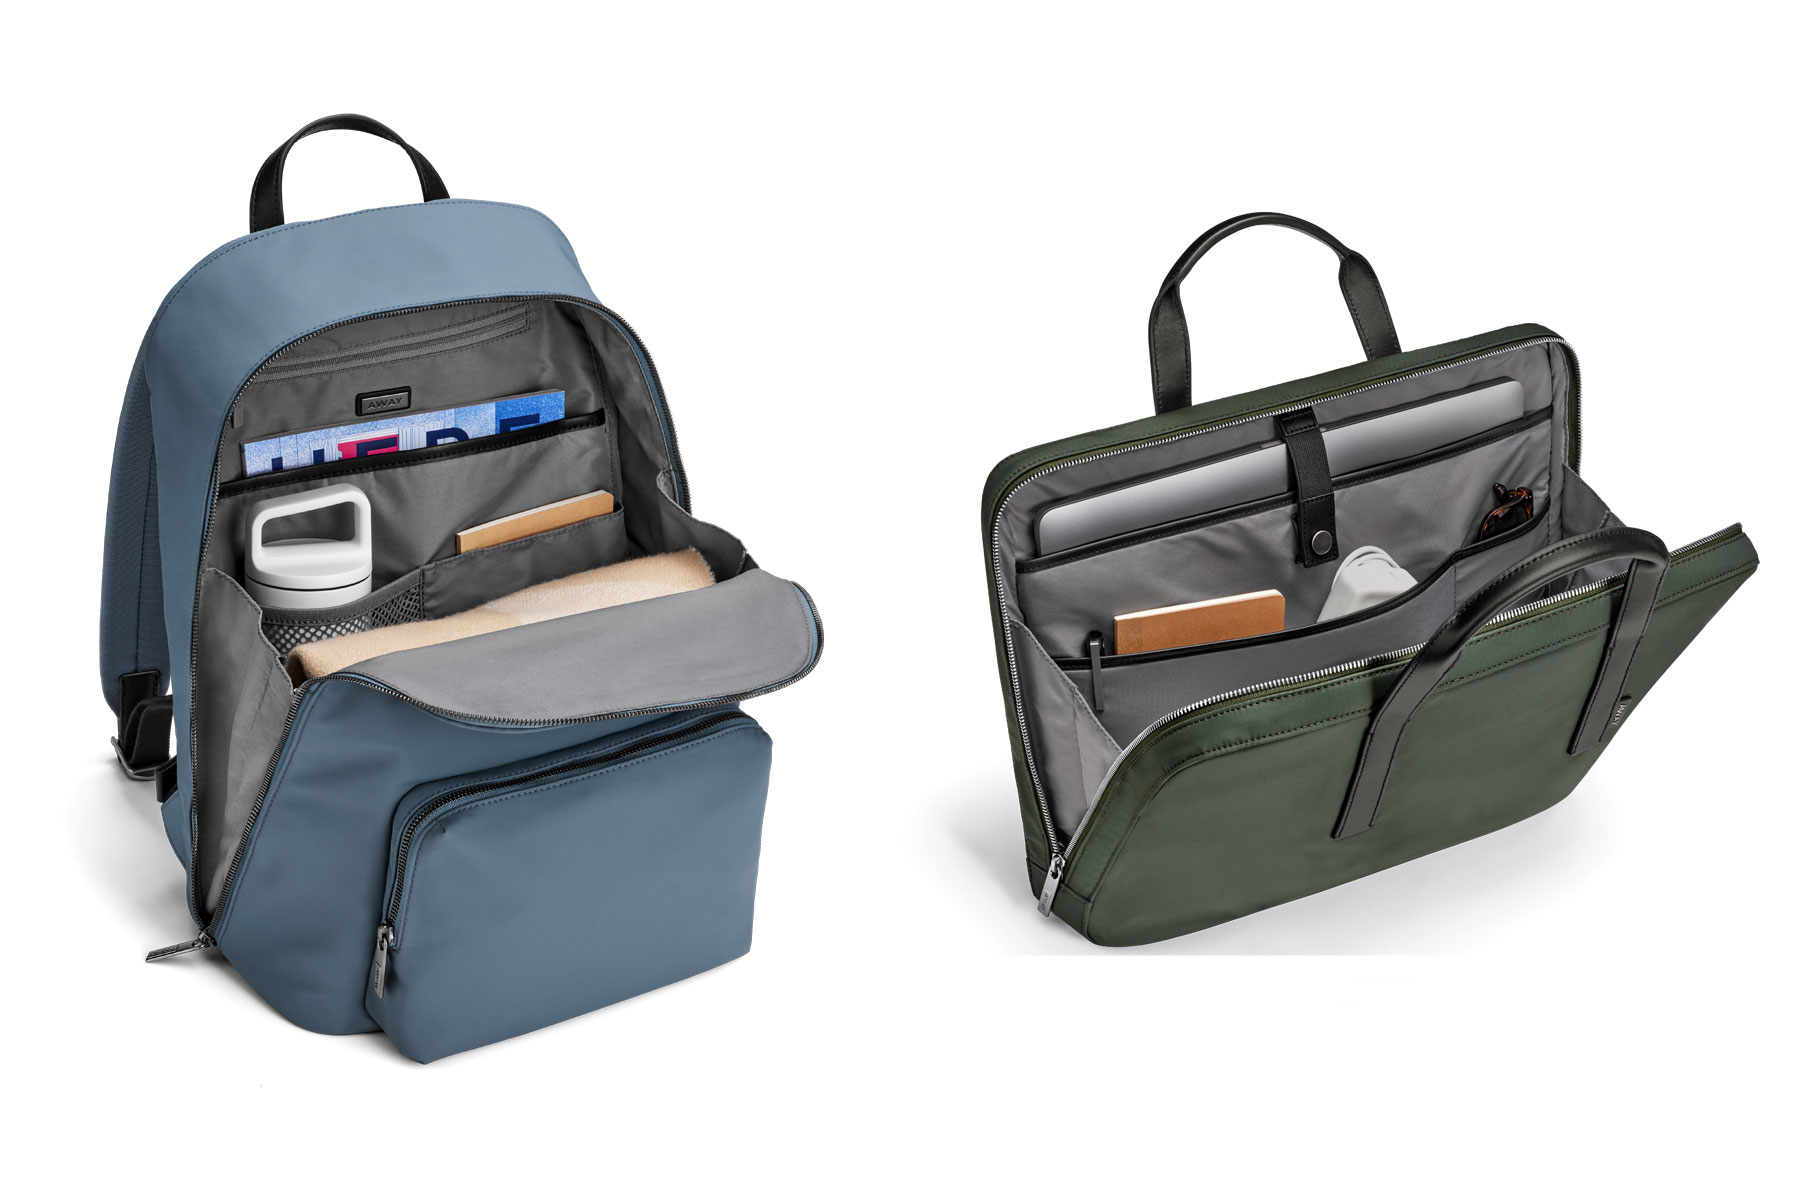 Blue nylon backpack and green nylon briefcase